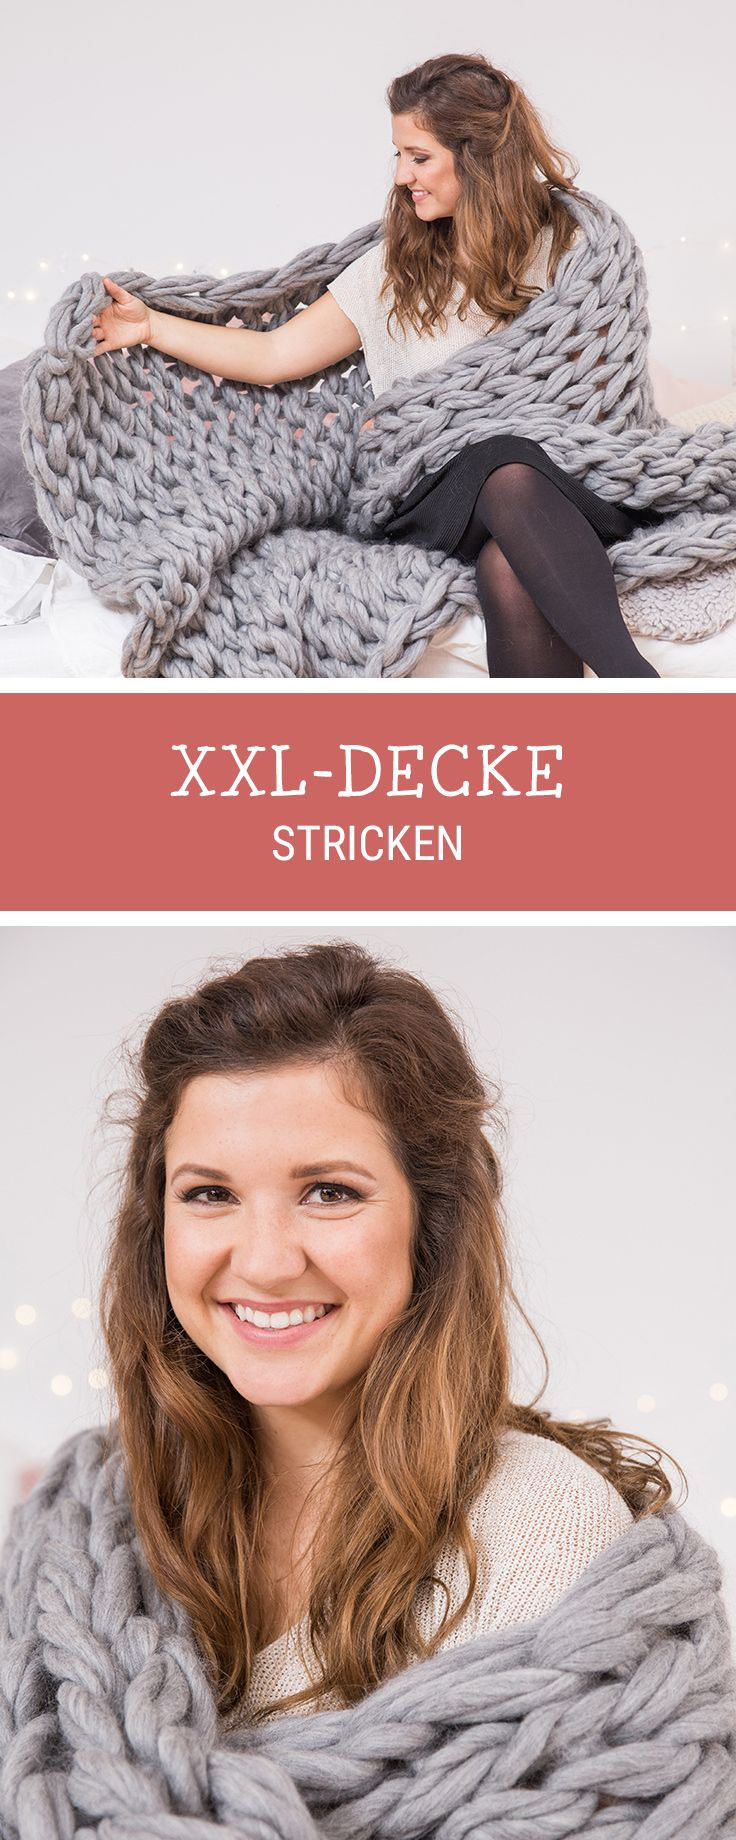 DIY-Inspiration für Stricker - XXL Decke mit den Armen #stricken, #DIY zusammen mit unserem Partner #langyarns / #knitting inspiration: how to knit an oversized blanket with your arms and chunky yarn via DaWanda.com // #dawandaandfriends